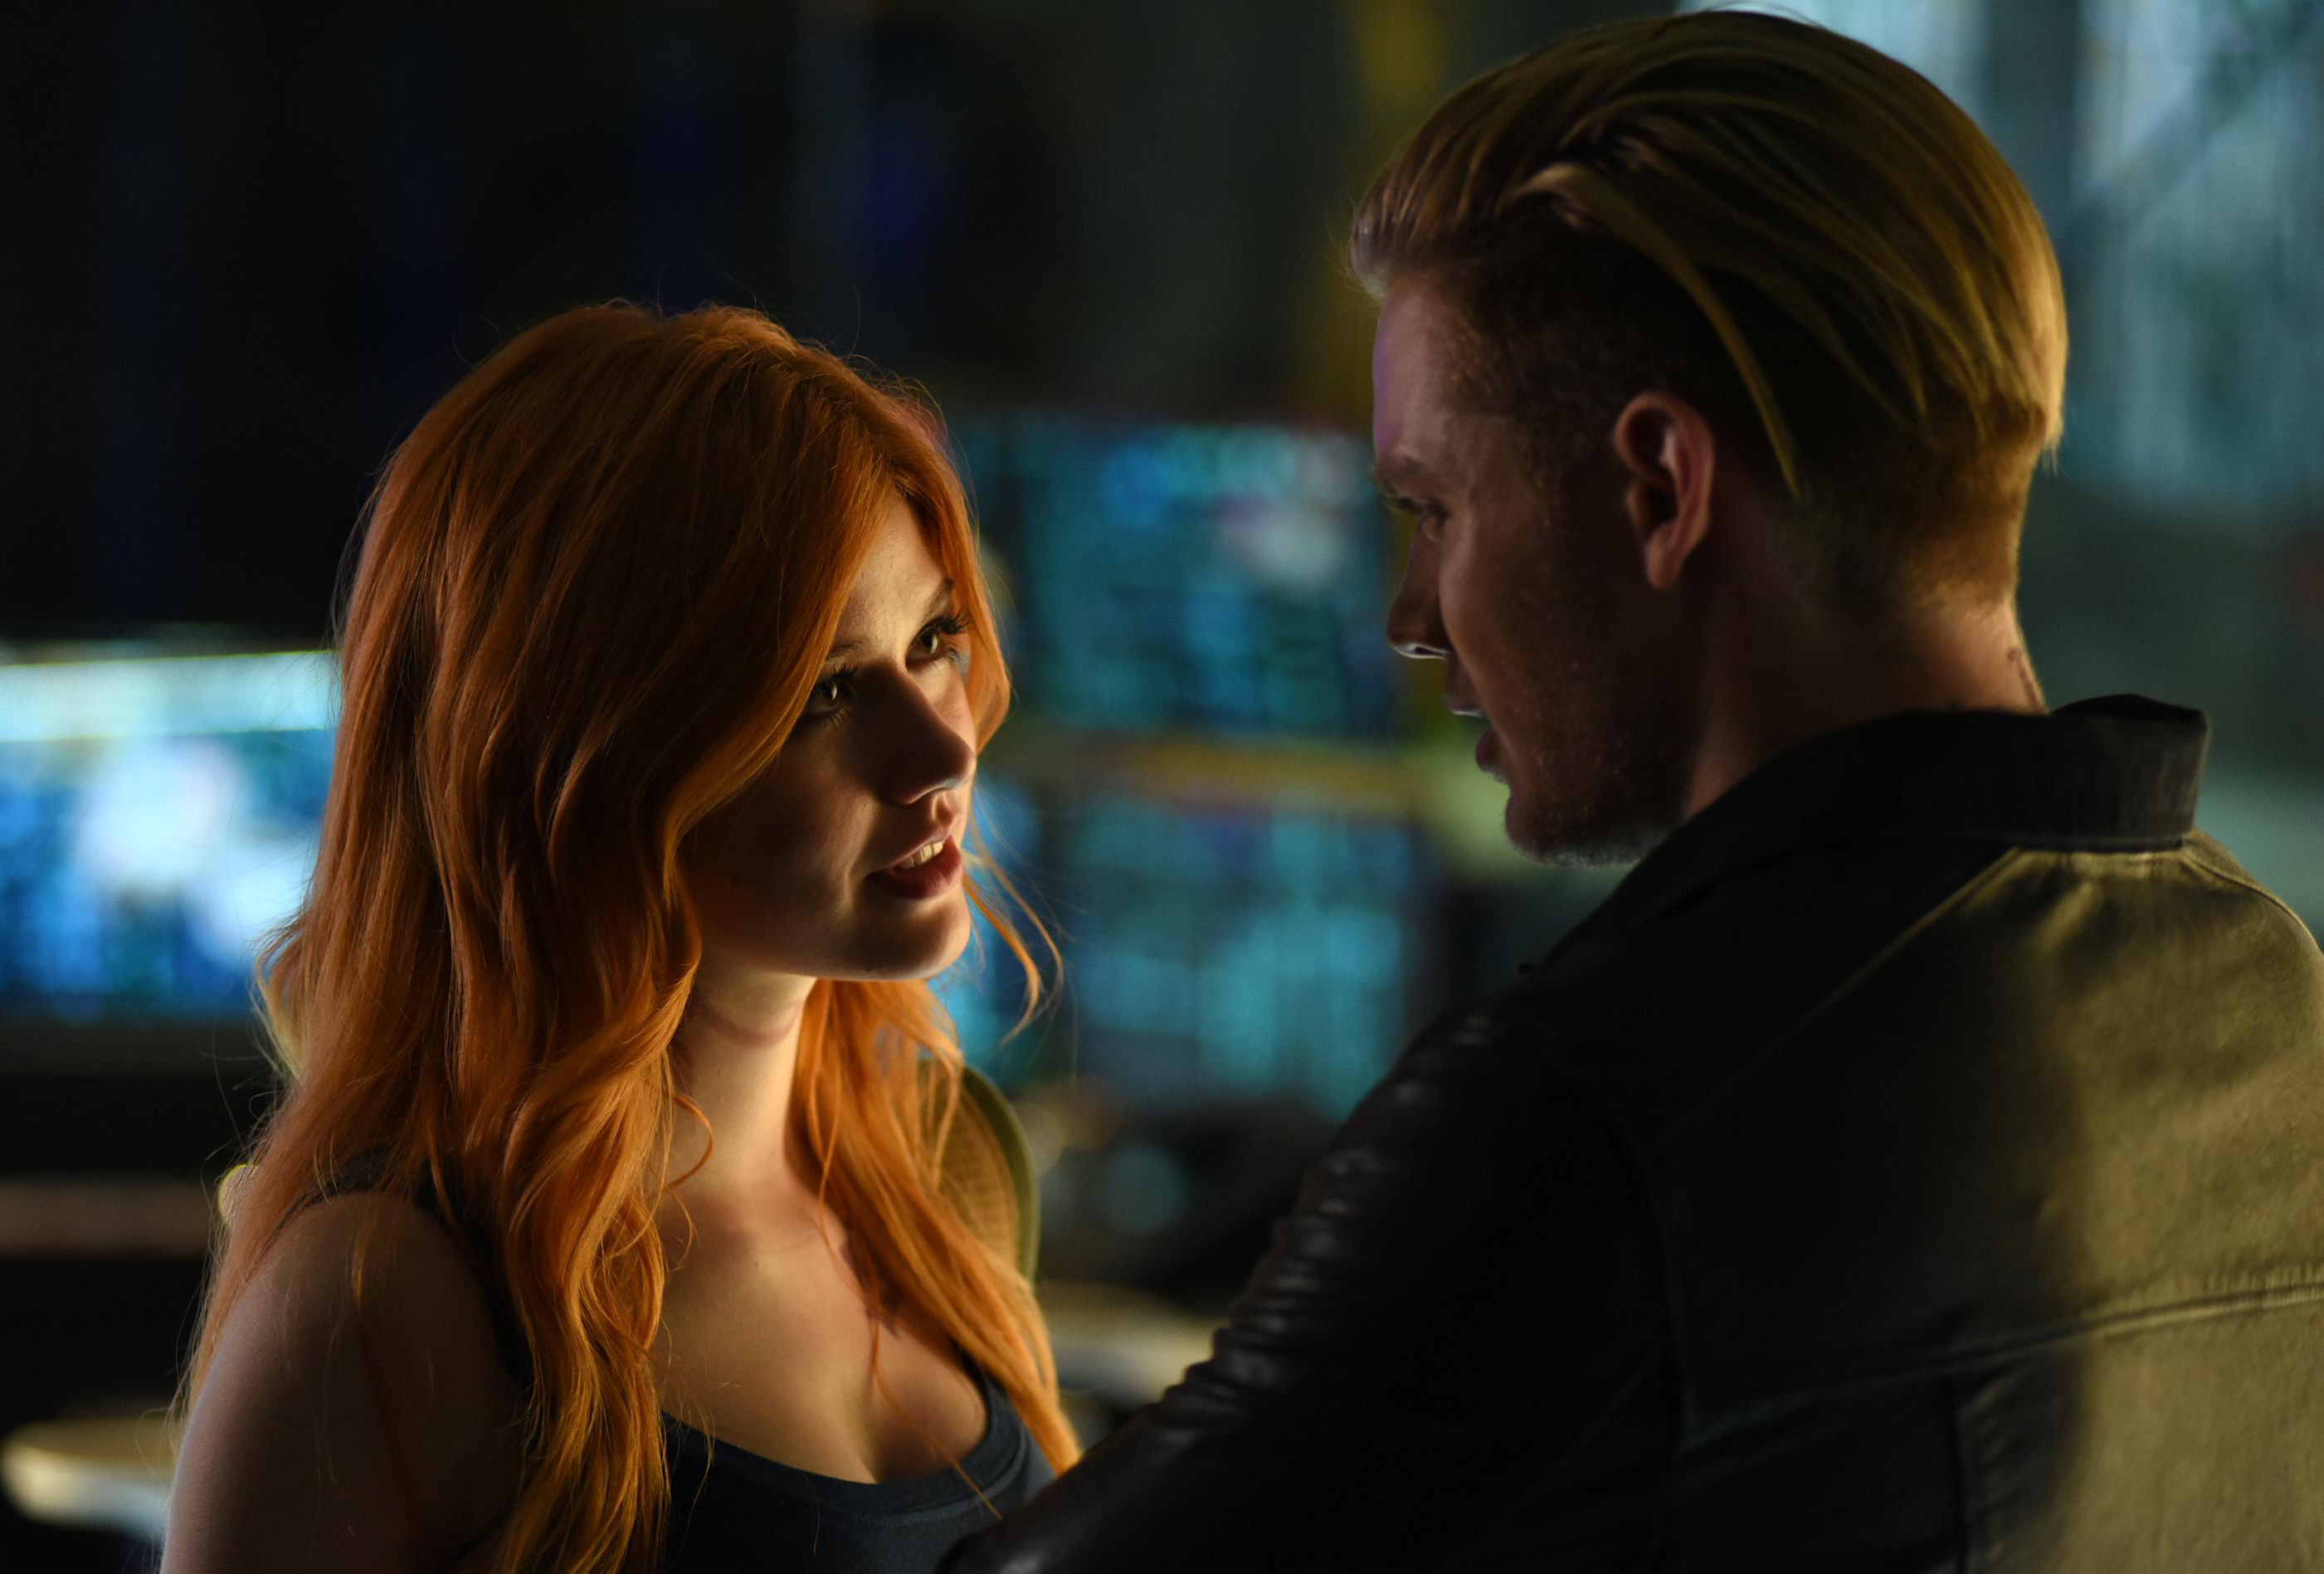 shadowhunters-episode-7-still-01